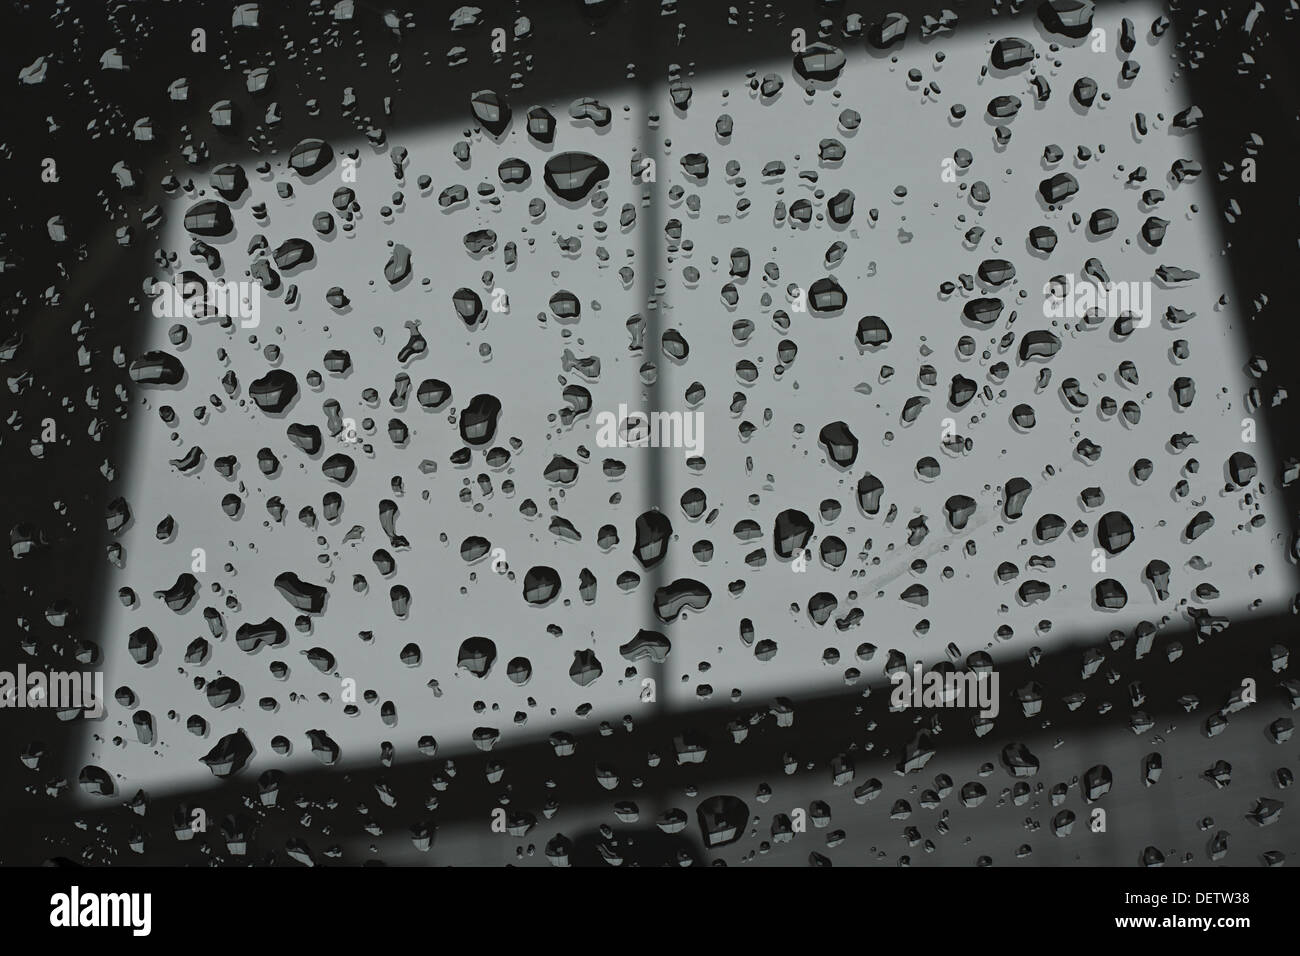 Abstract photograph of a window pane with raindrops on symbolising dull wintry weather - Stock Image